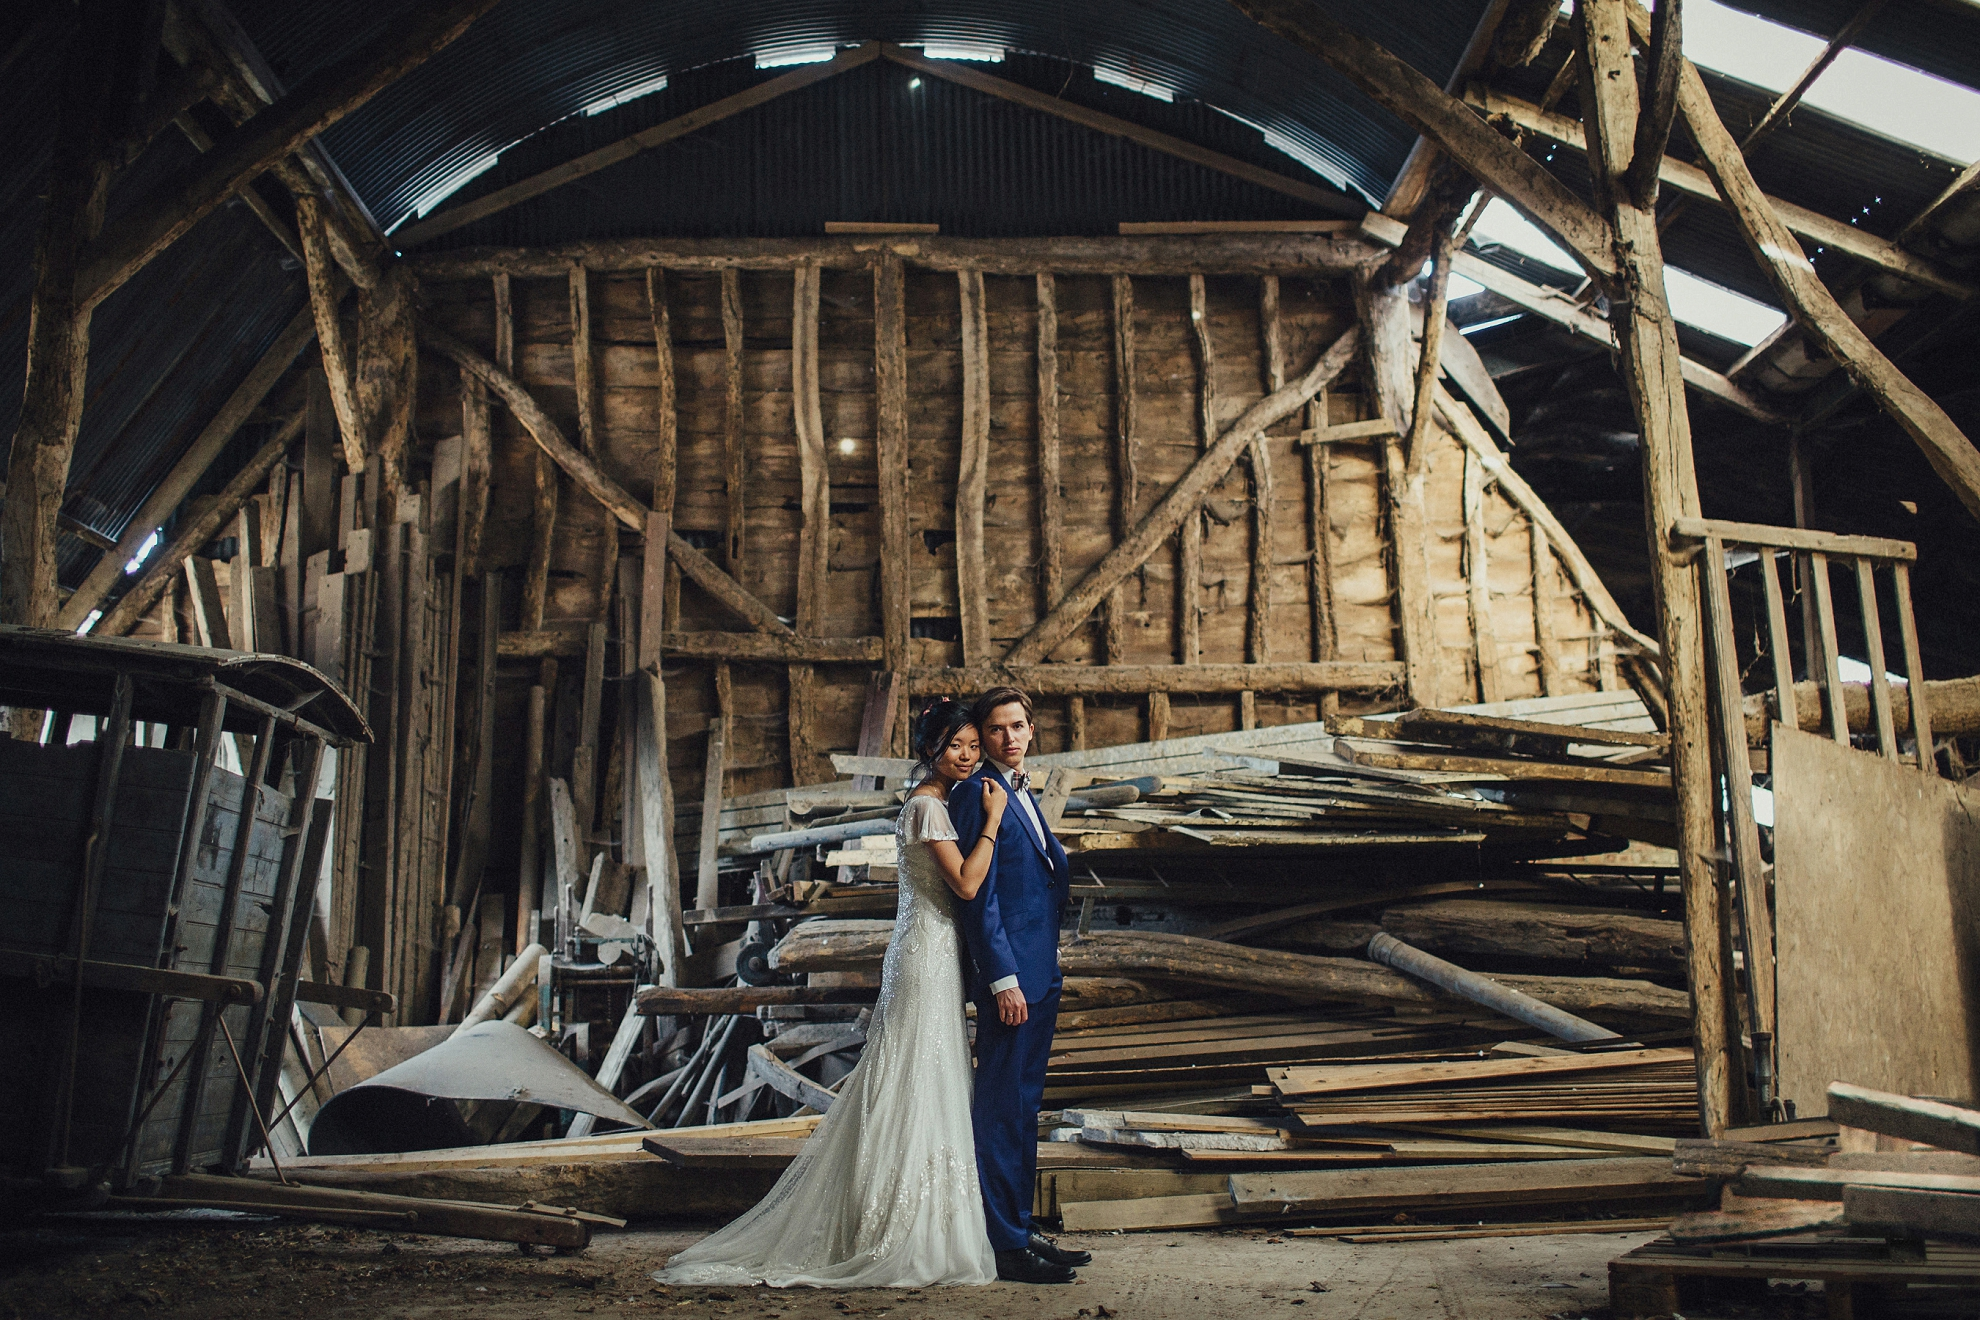 Manor barn weddings